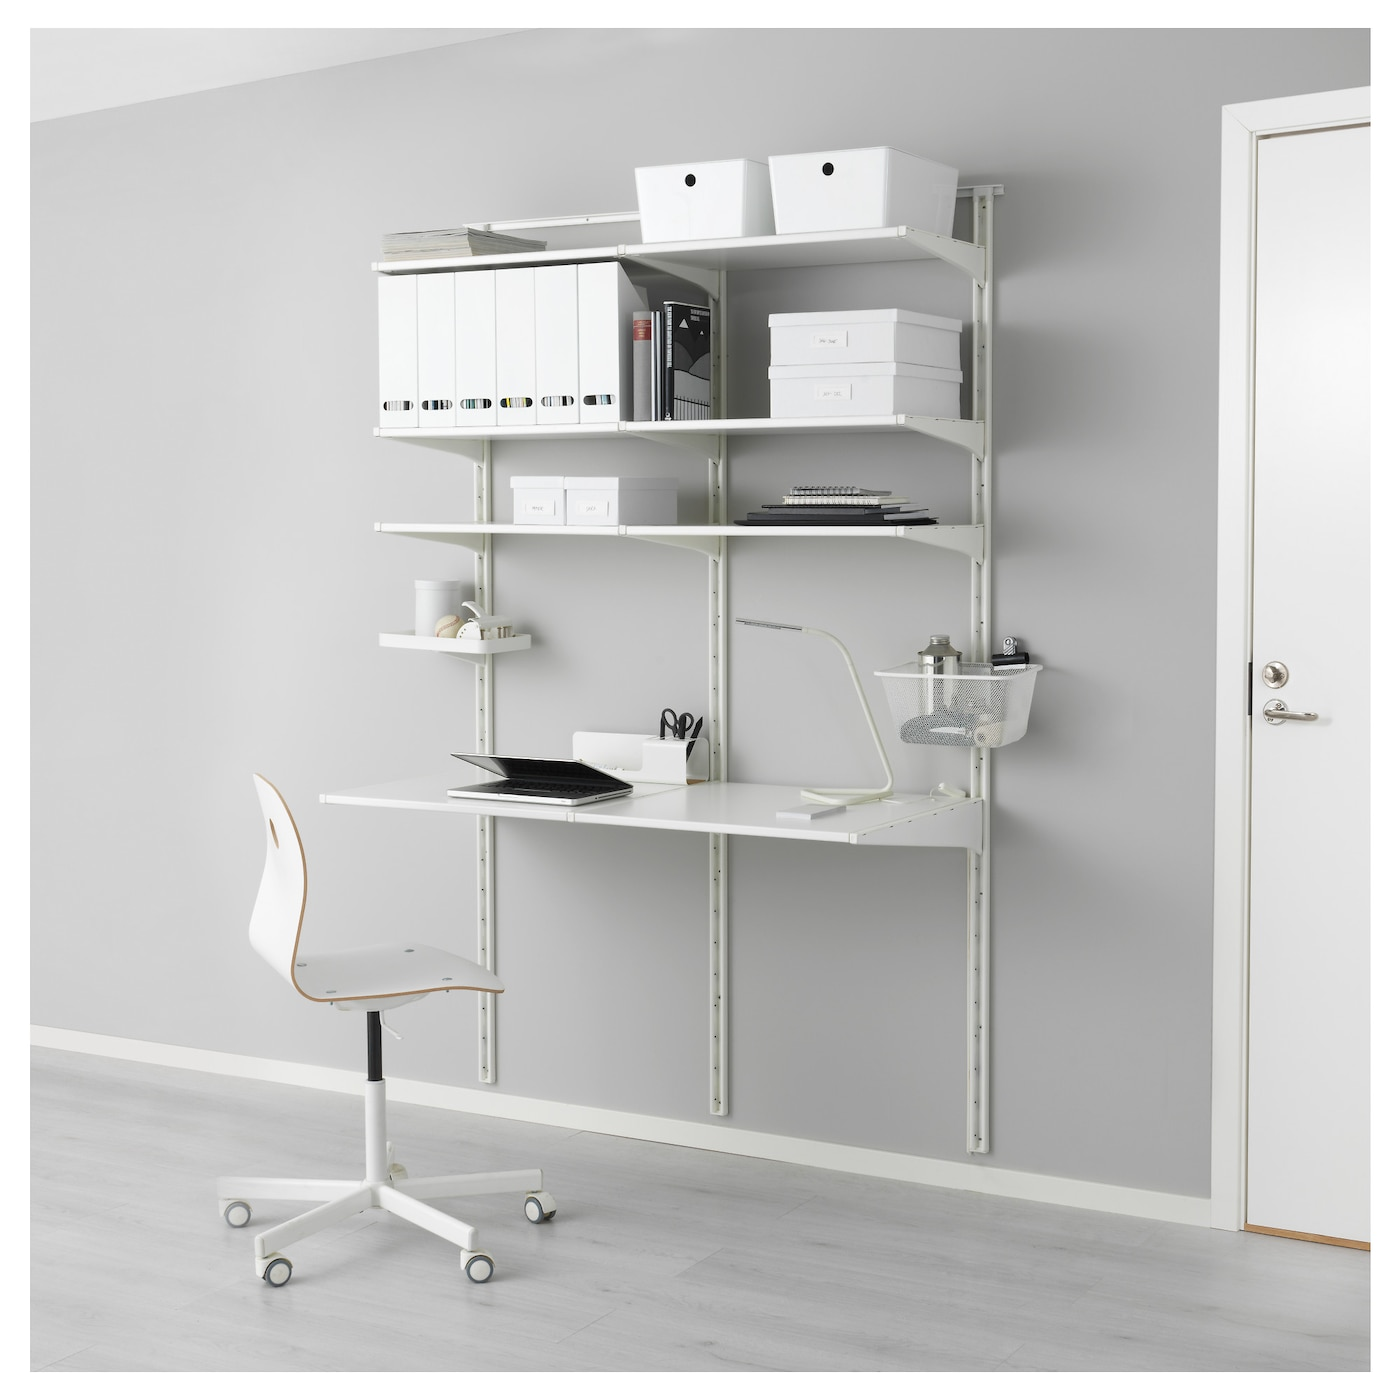 algot wall upright shelves white 154x60x196 cm ikea. Black Bedroom Furniture Sets. Home Design Ideas